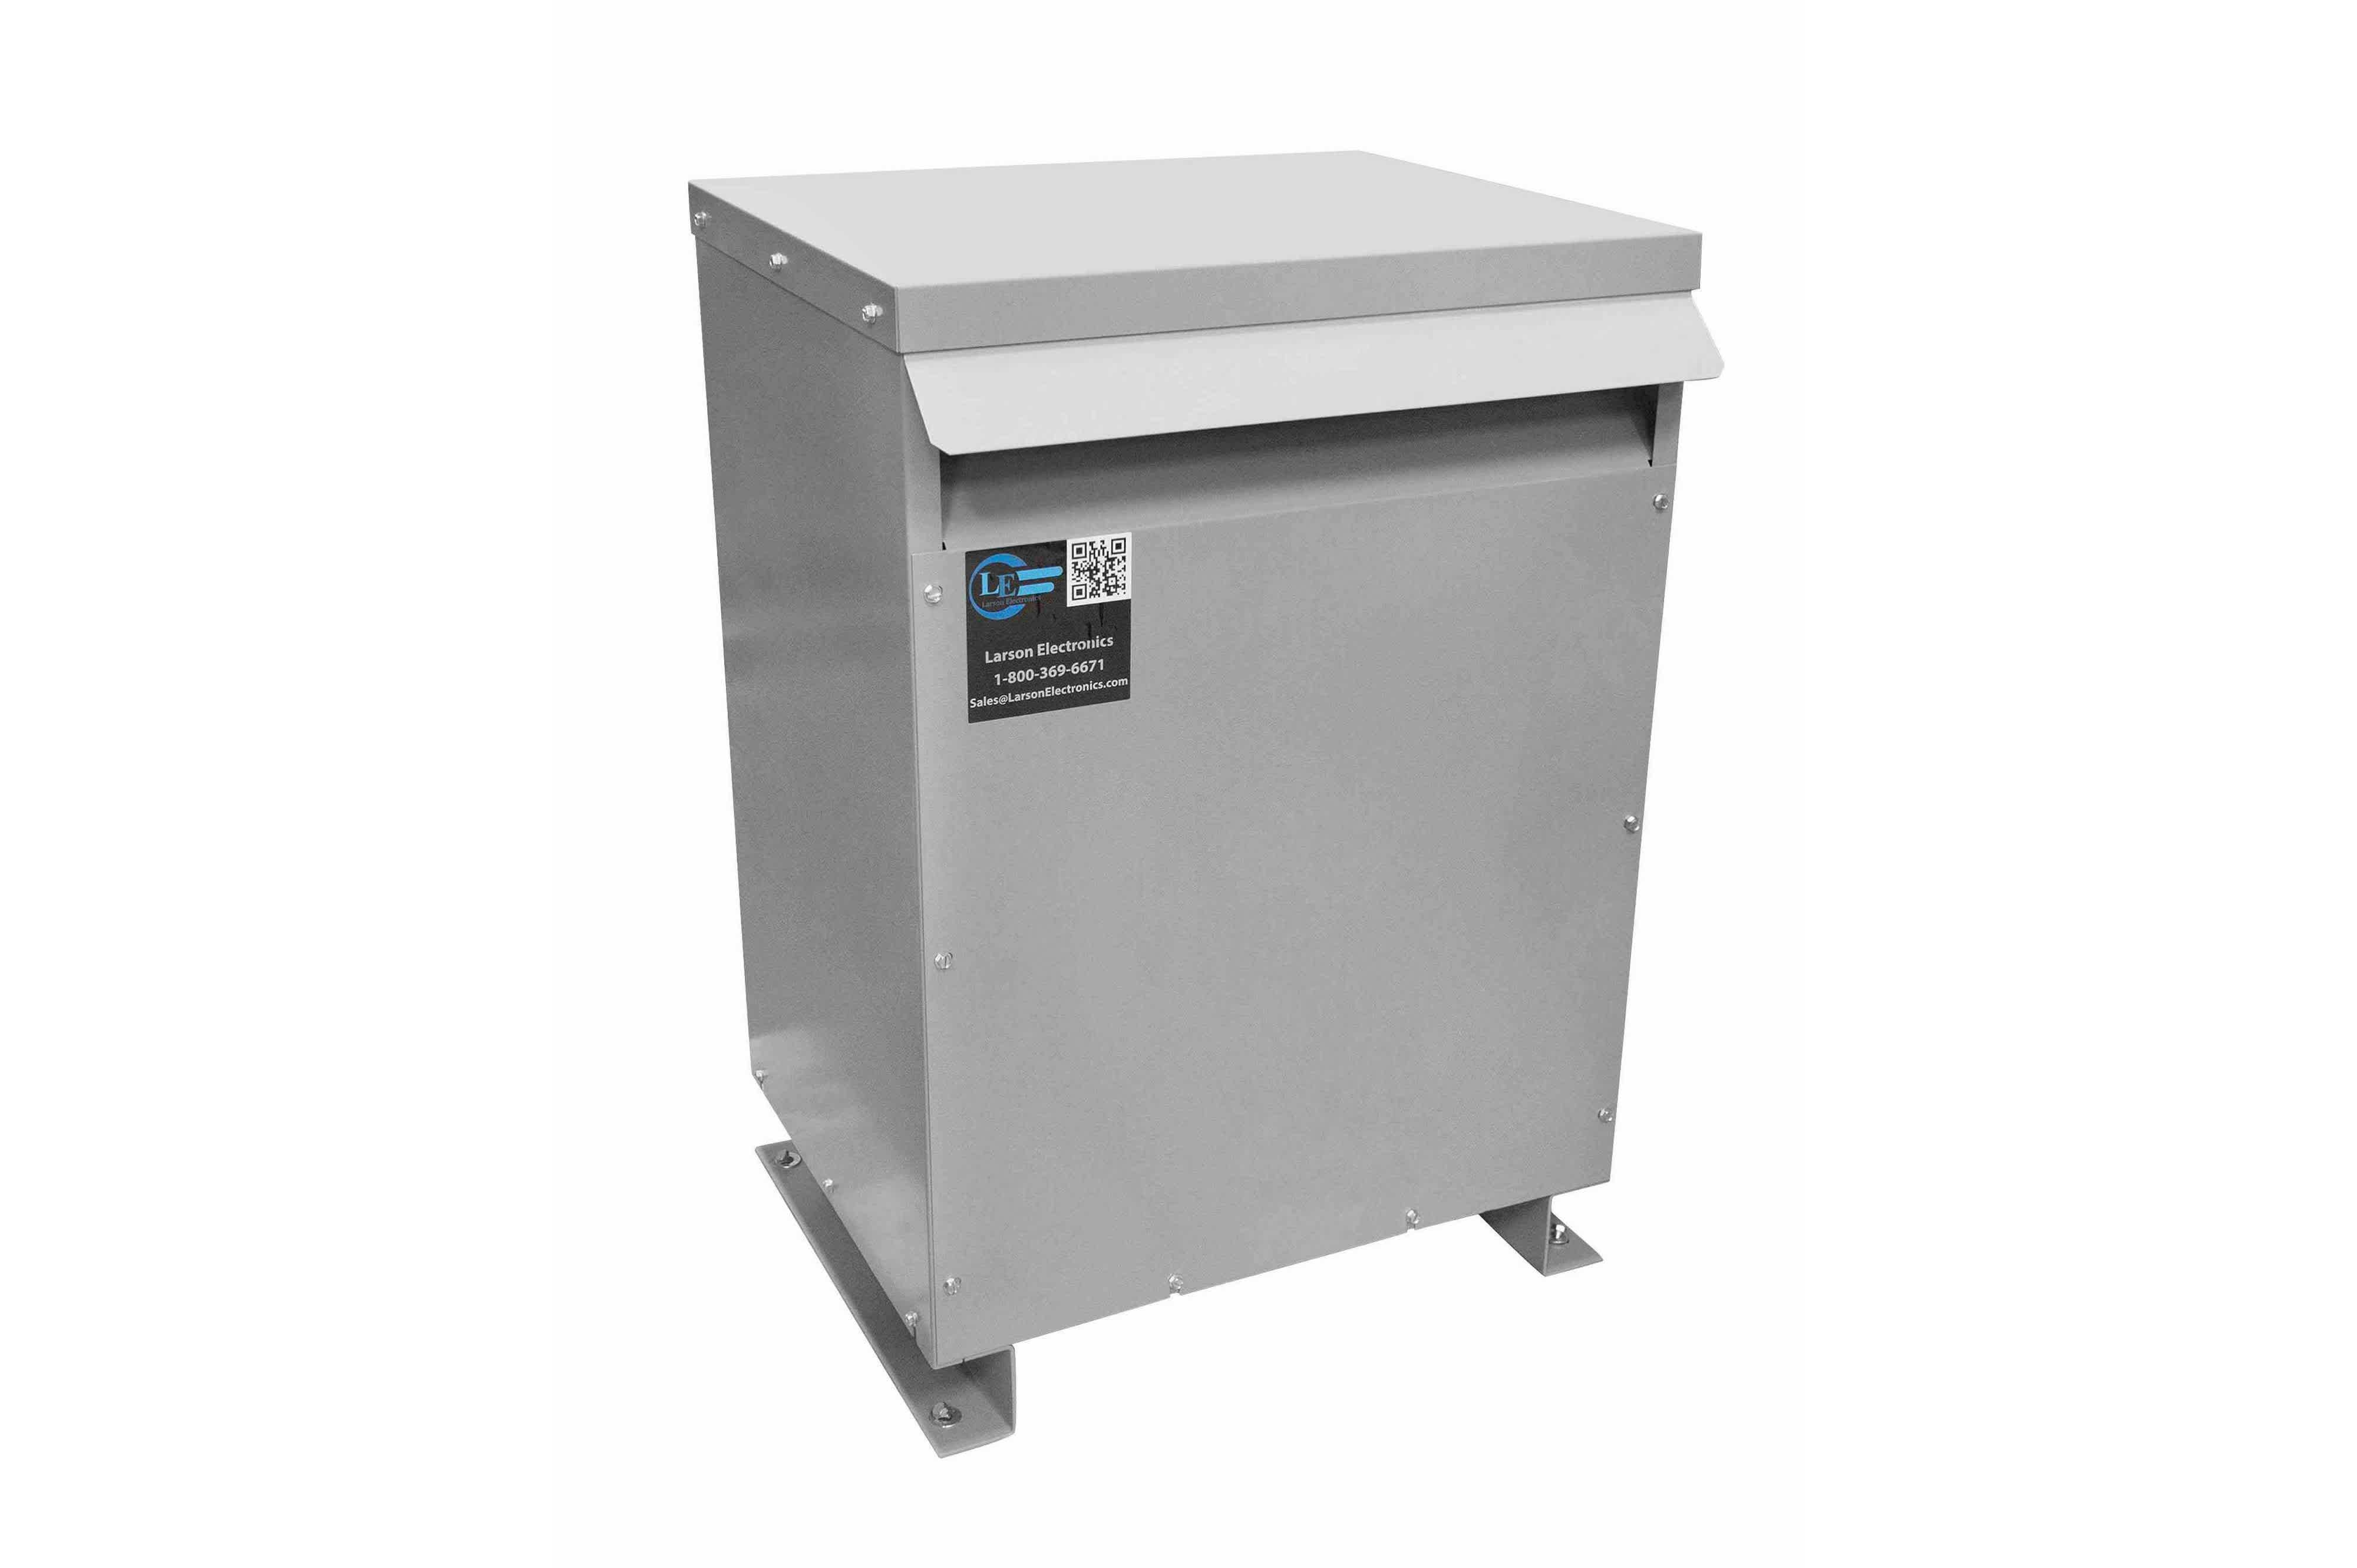 112.5 kVA 3PH Isolation Transformer, 480V Wye Primary, 240V/120 Delta Secondary, N3R, Ventilated, 60 Hz